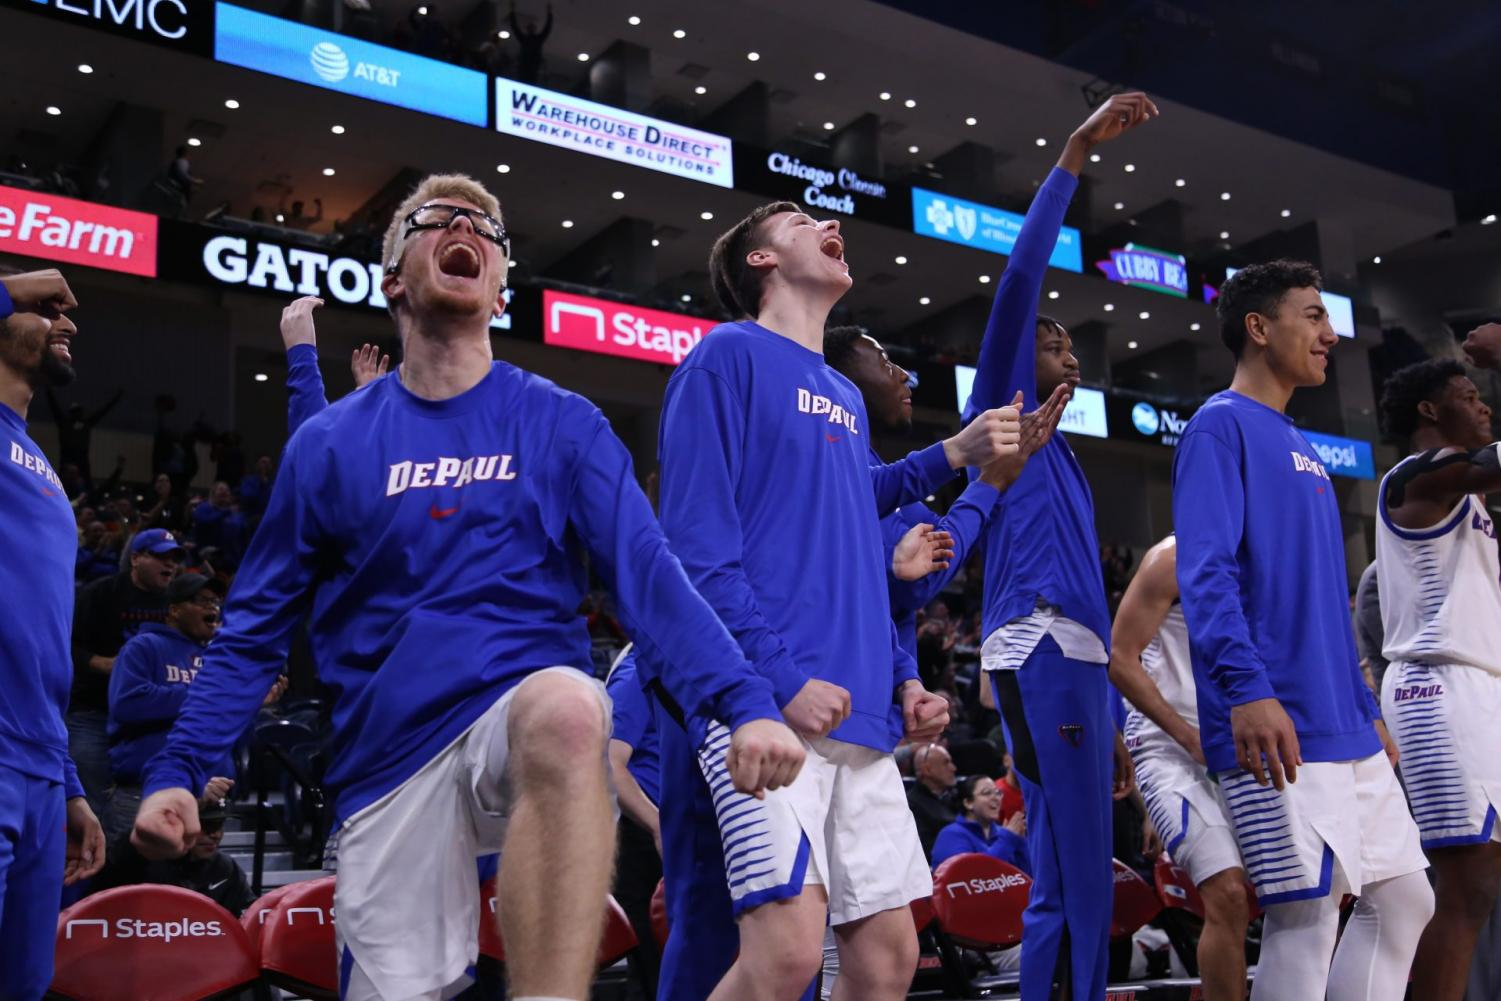 The bench celebrates during the second half of a game against Central Michigan on Tuesday, Nov. 26.